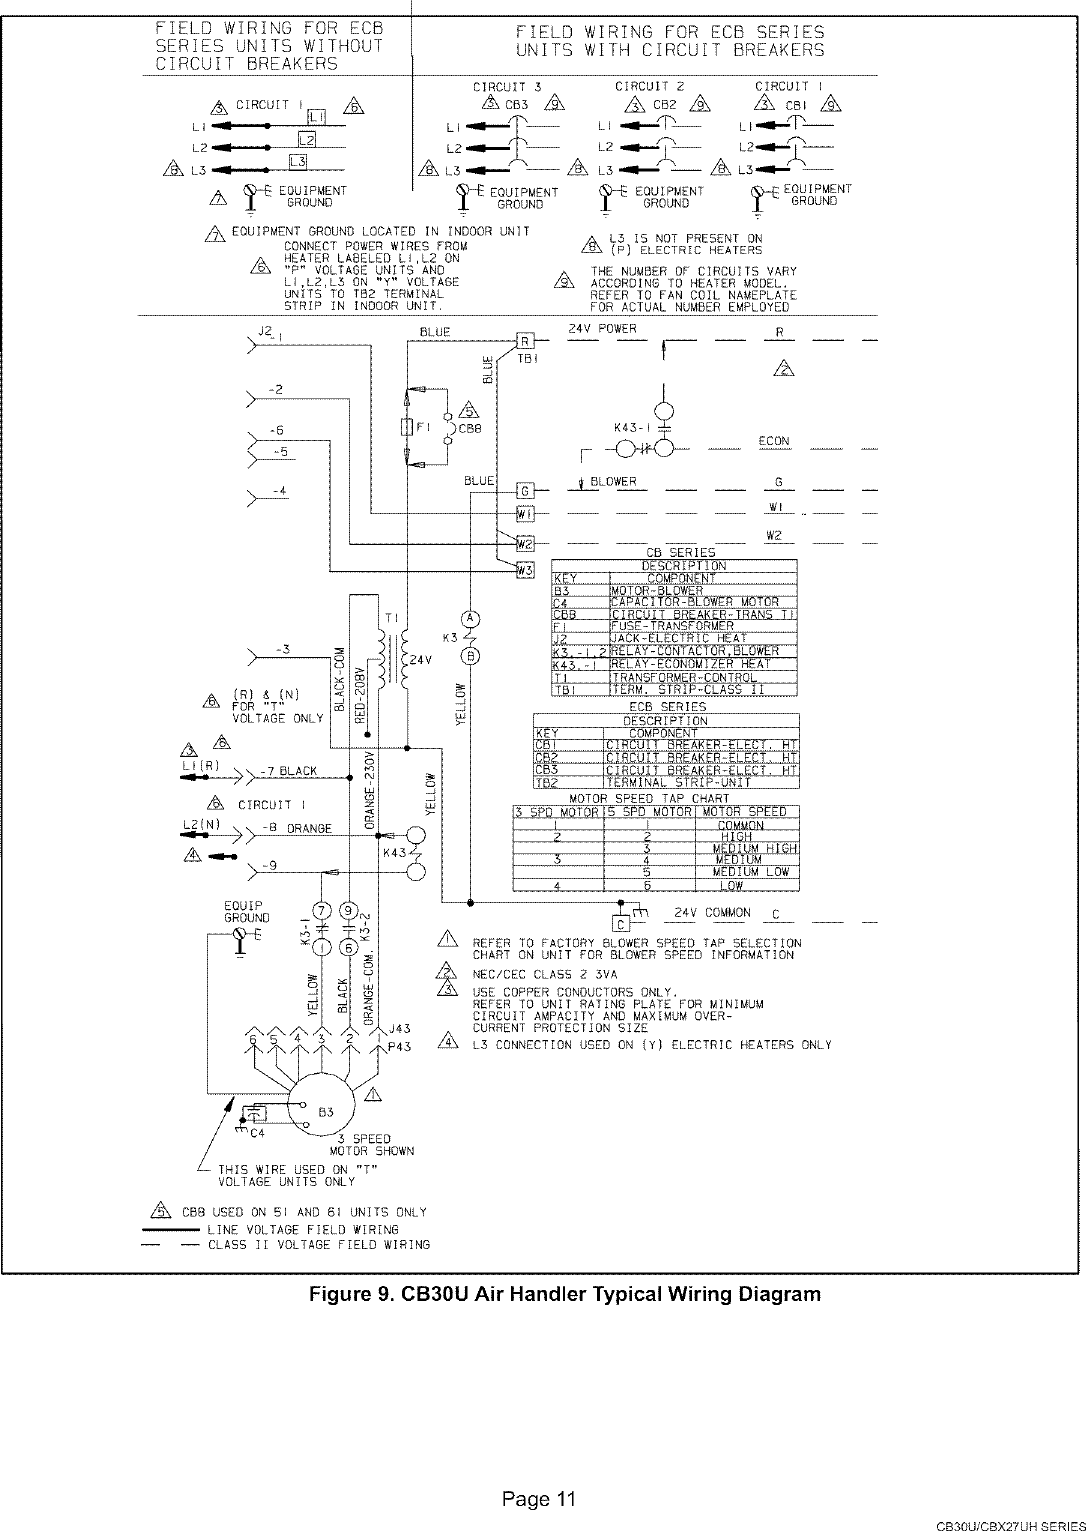 Lennox Air Handler Indoor Blowerevap Manual L0805327 Mm 2 58t Wiring Diagram For Thermostat Page 11 Of 12